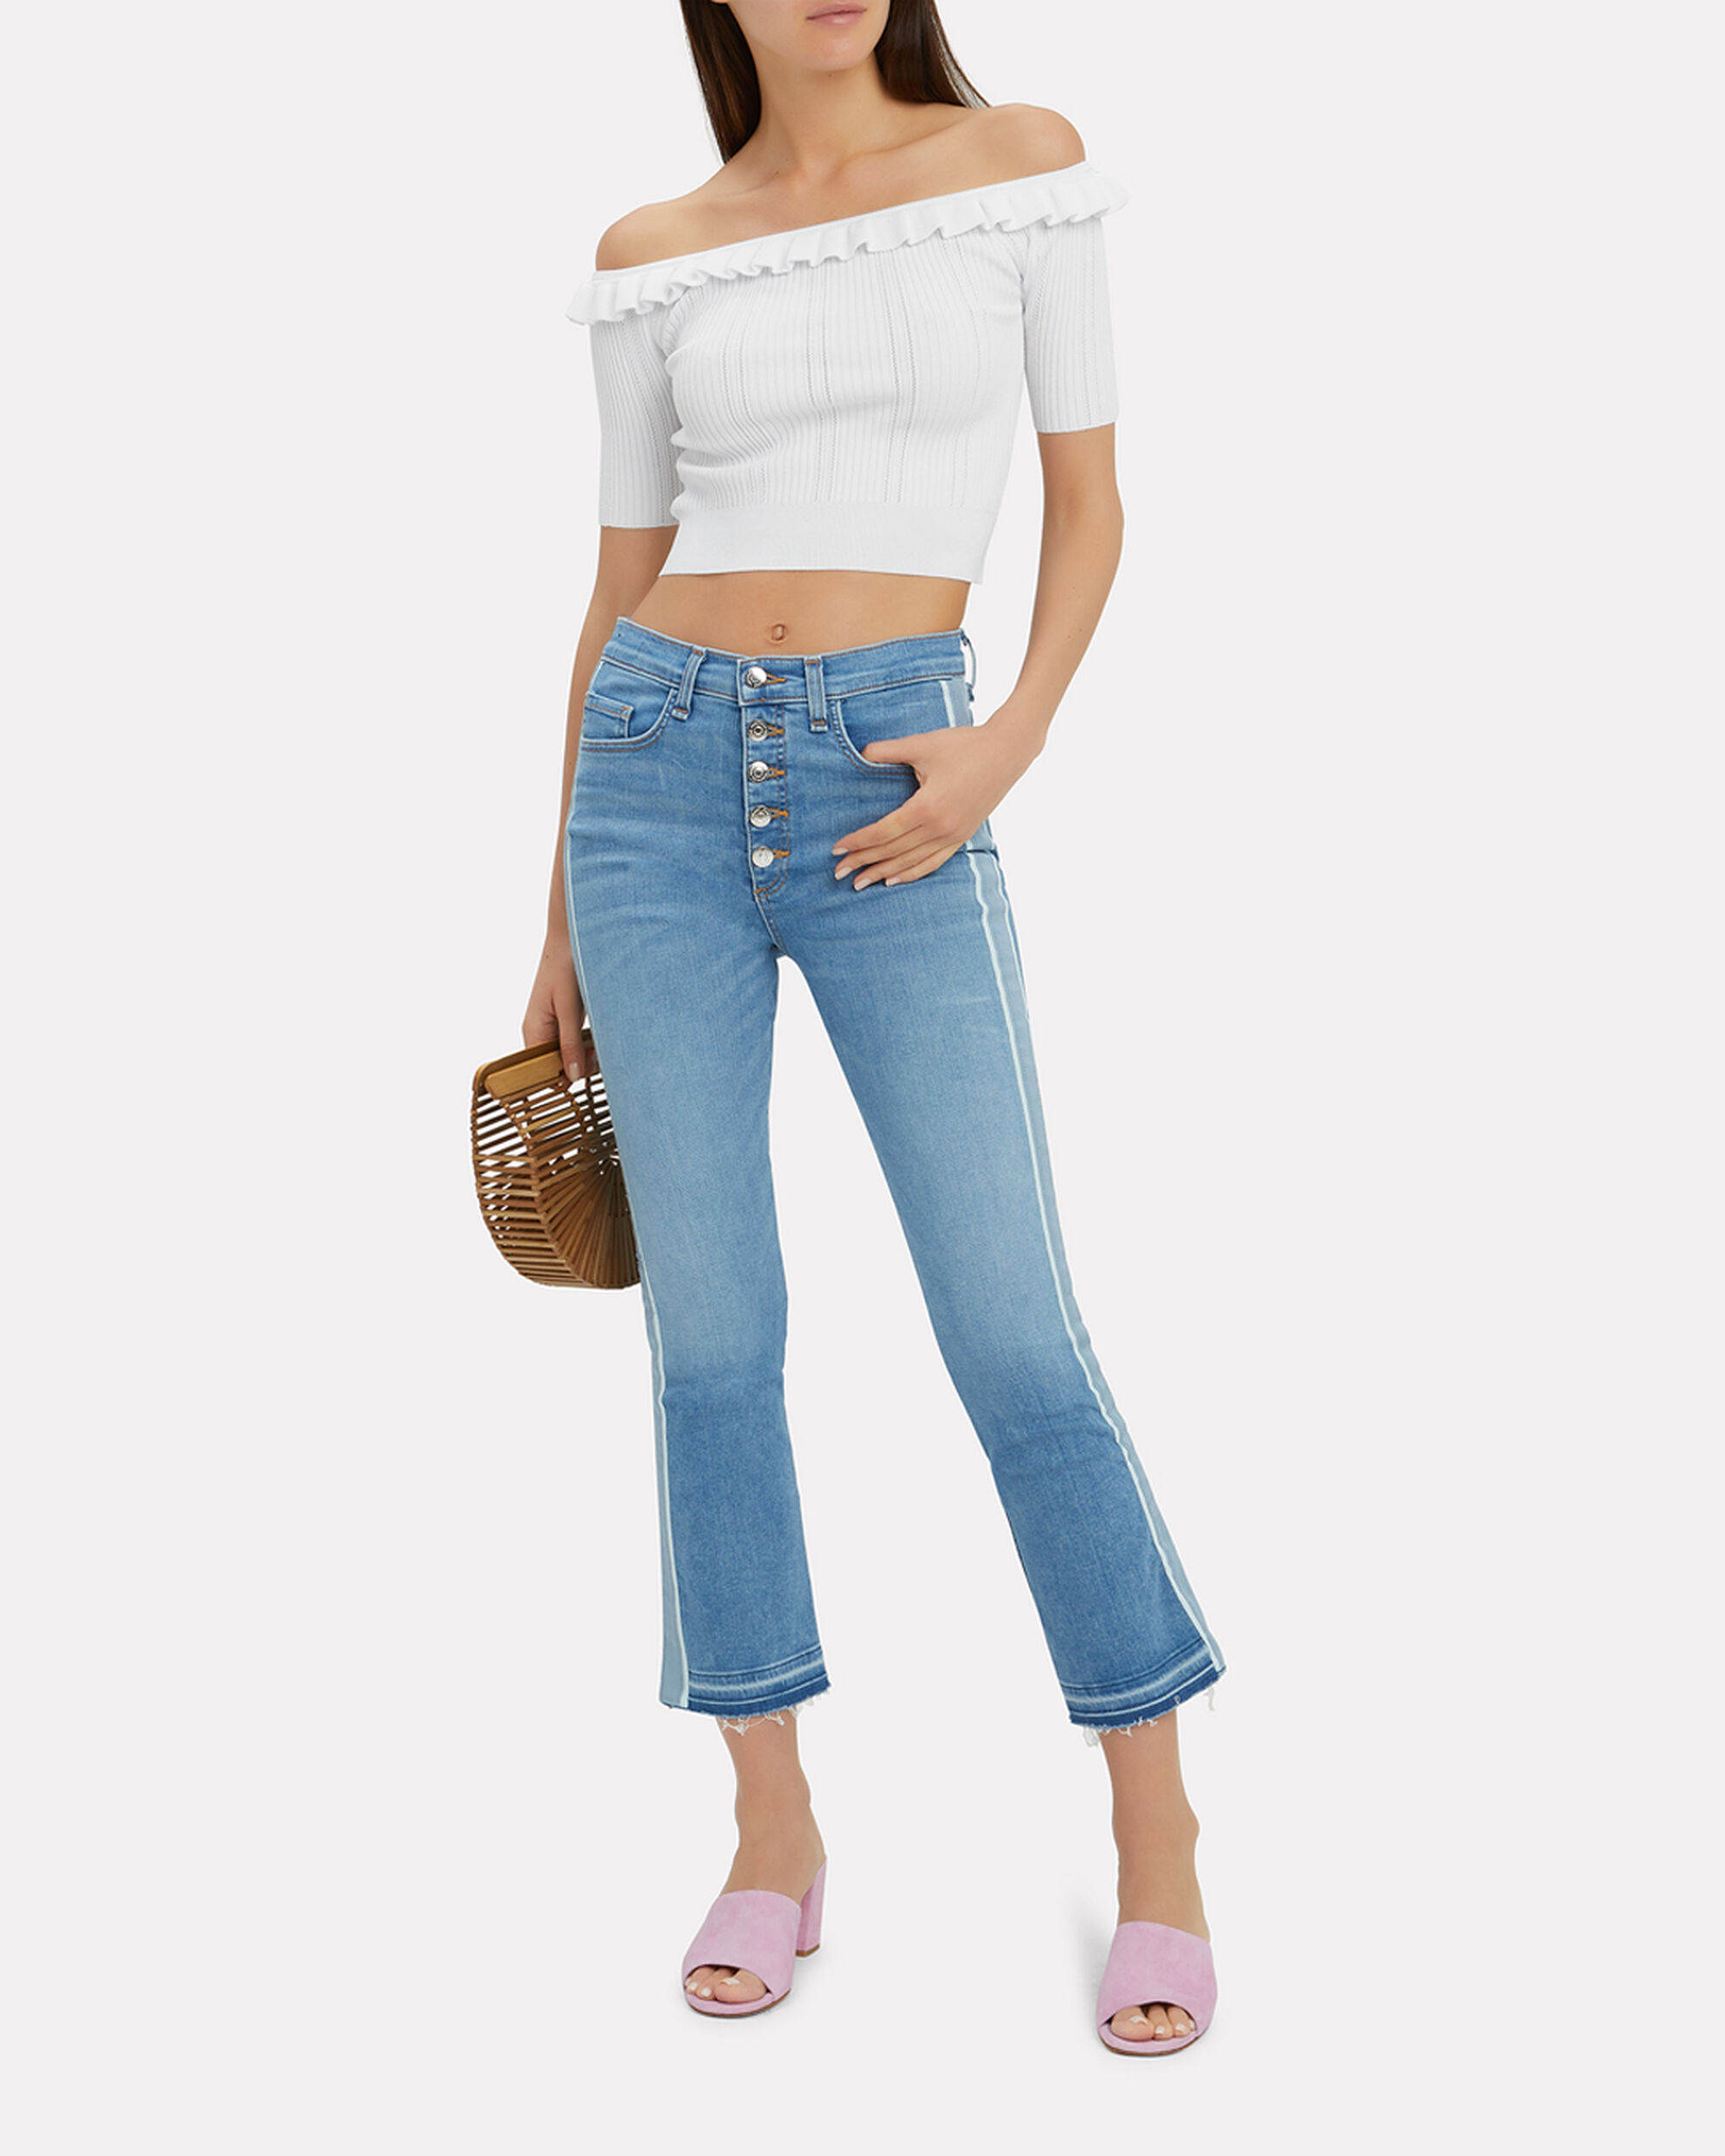 Amalia Crop Top, WHITE, hi-res